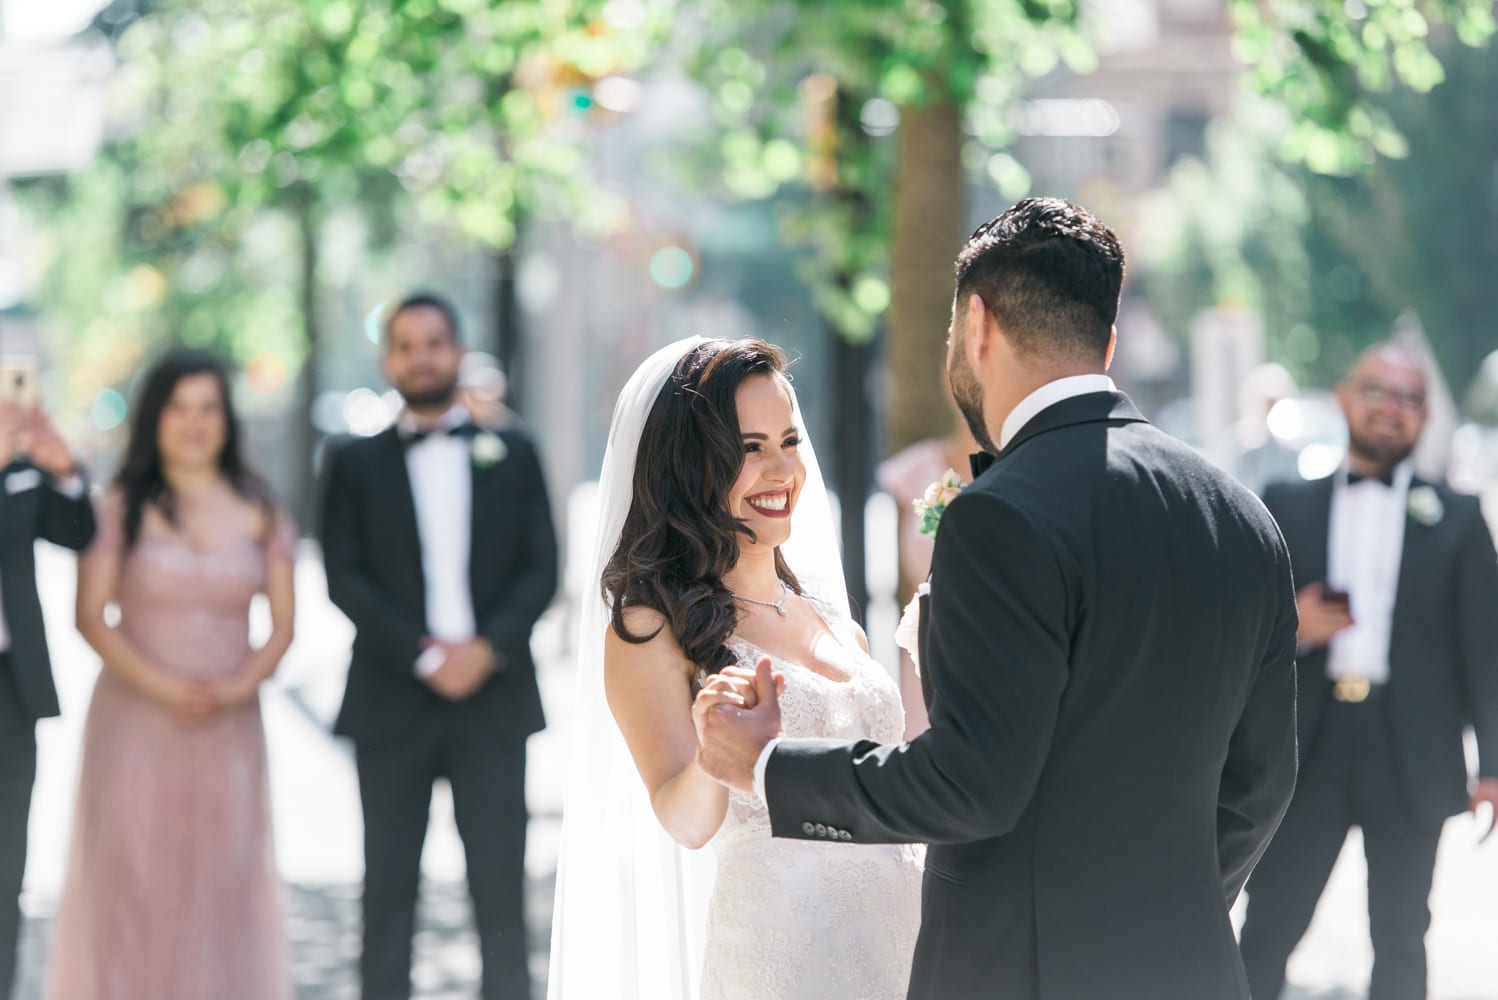 A Vintage Persian Wedding in Vancouver - Couple's first look